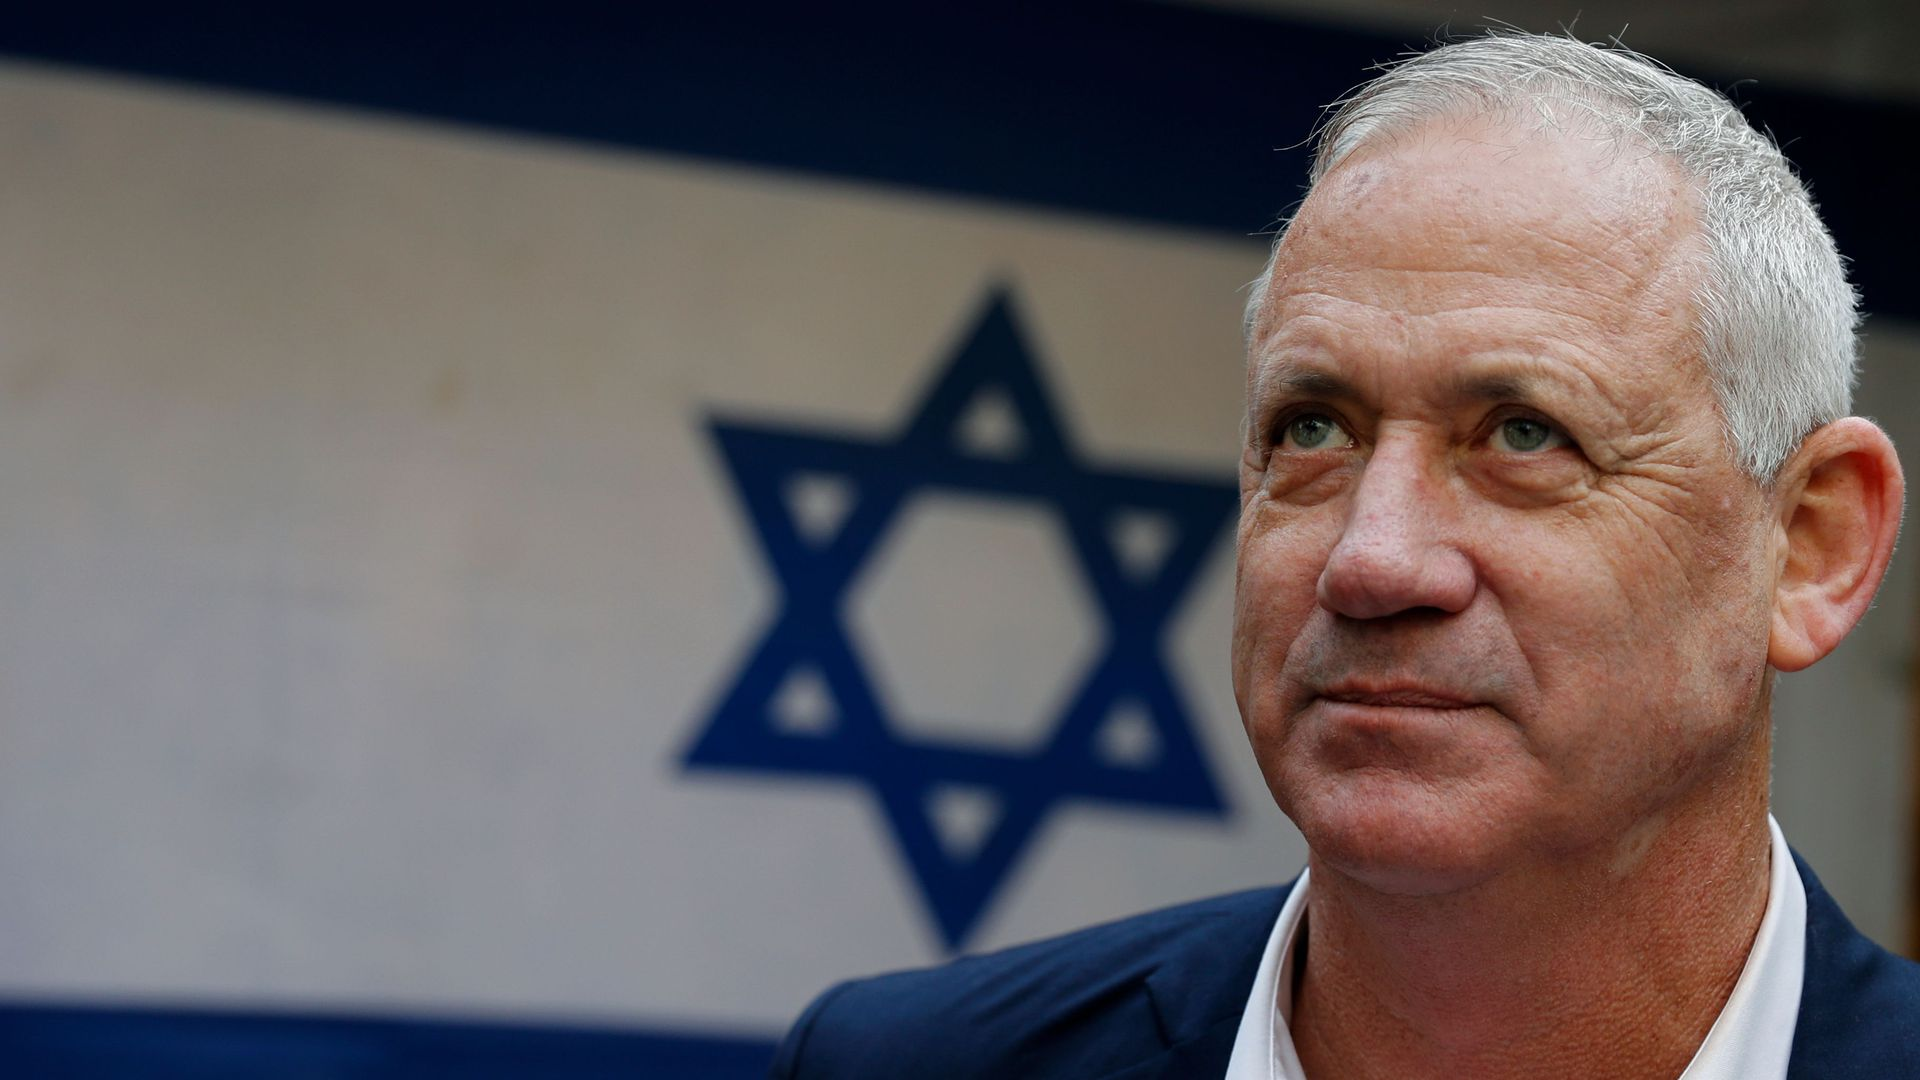 Israel's Benny Gantz considers turning down Trump's White House invite for peace plan meeting